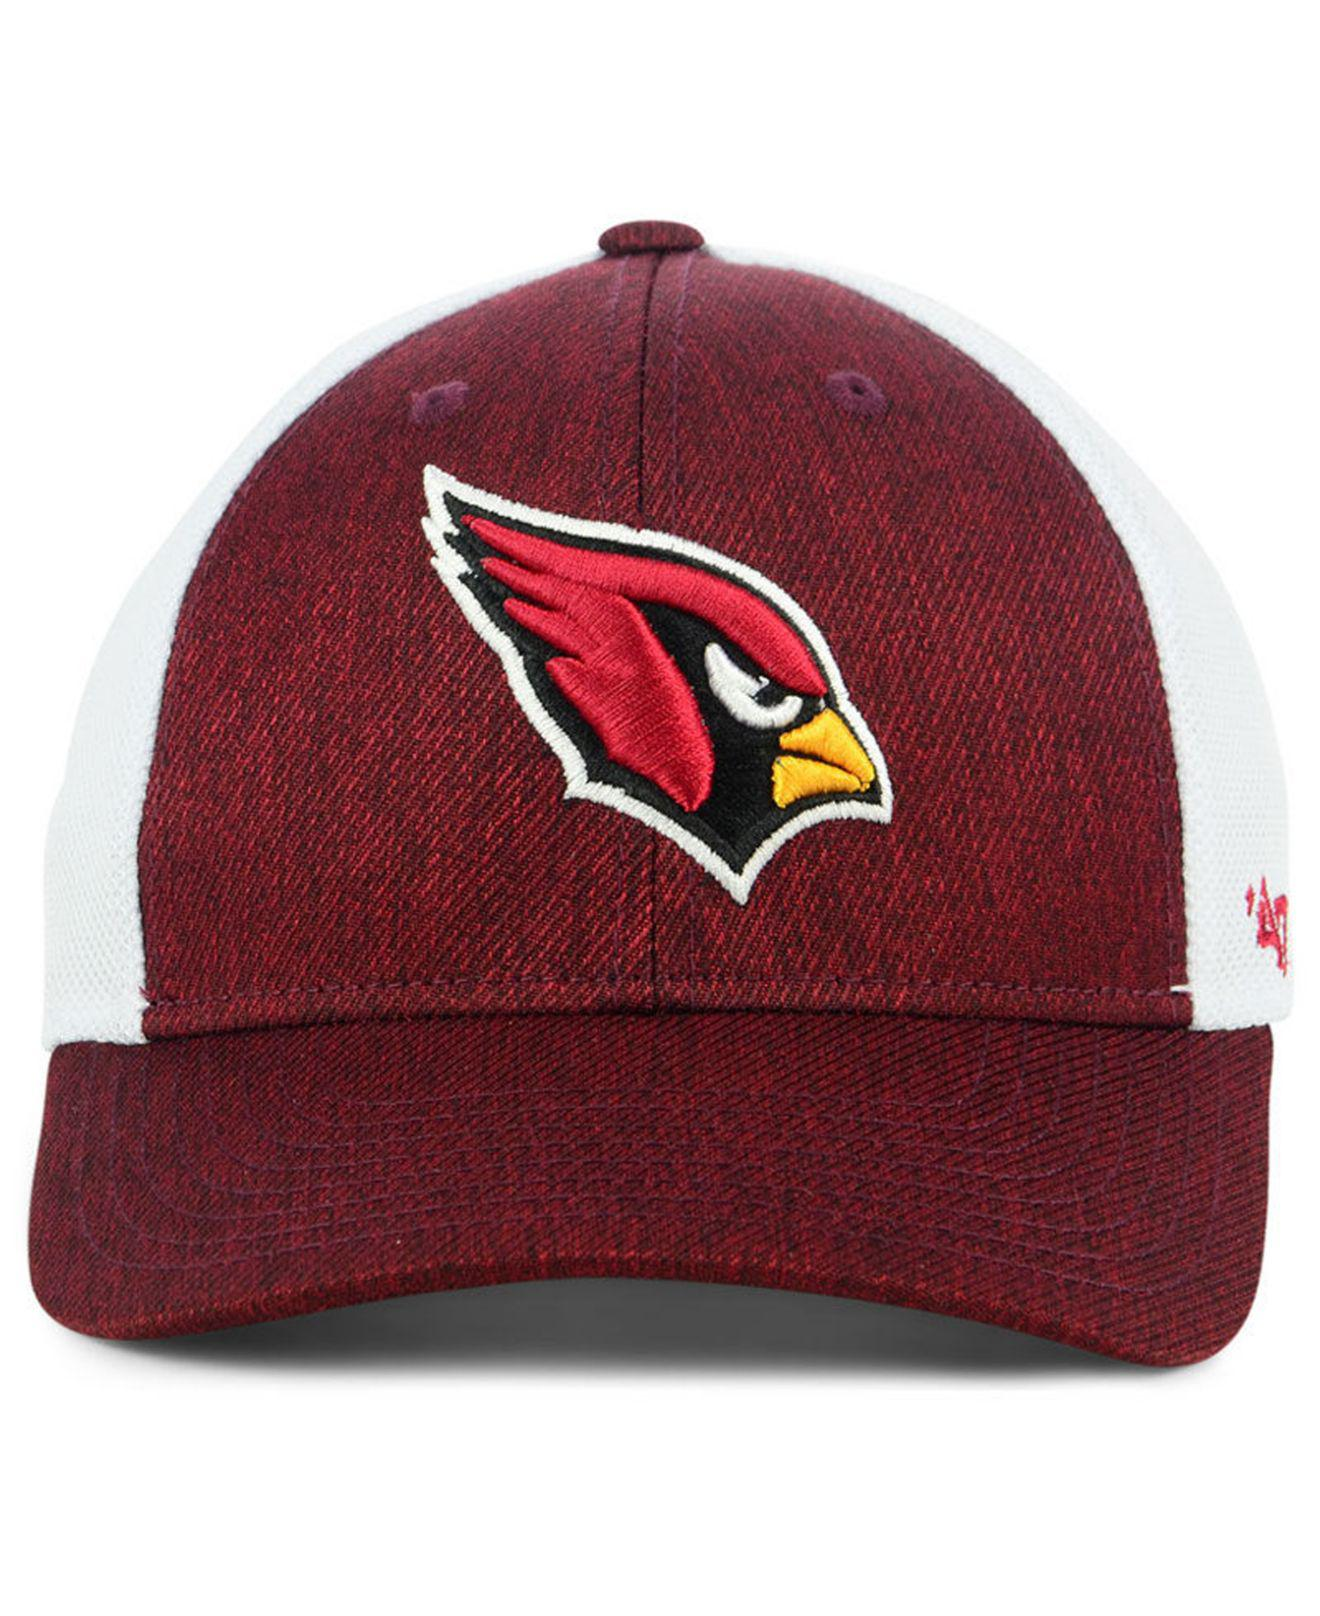 6c151db39fd Lyst - 47 Brand Arizona Cardinals Hazy Flex Contender Stretch Fitted Cap in  Red for Men